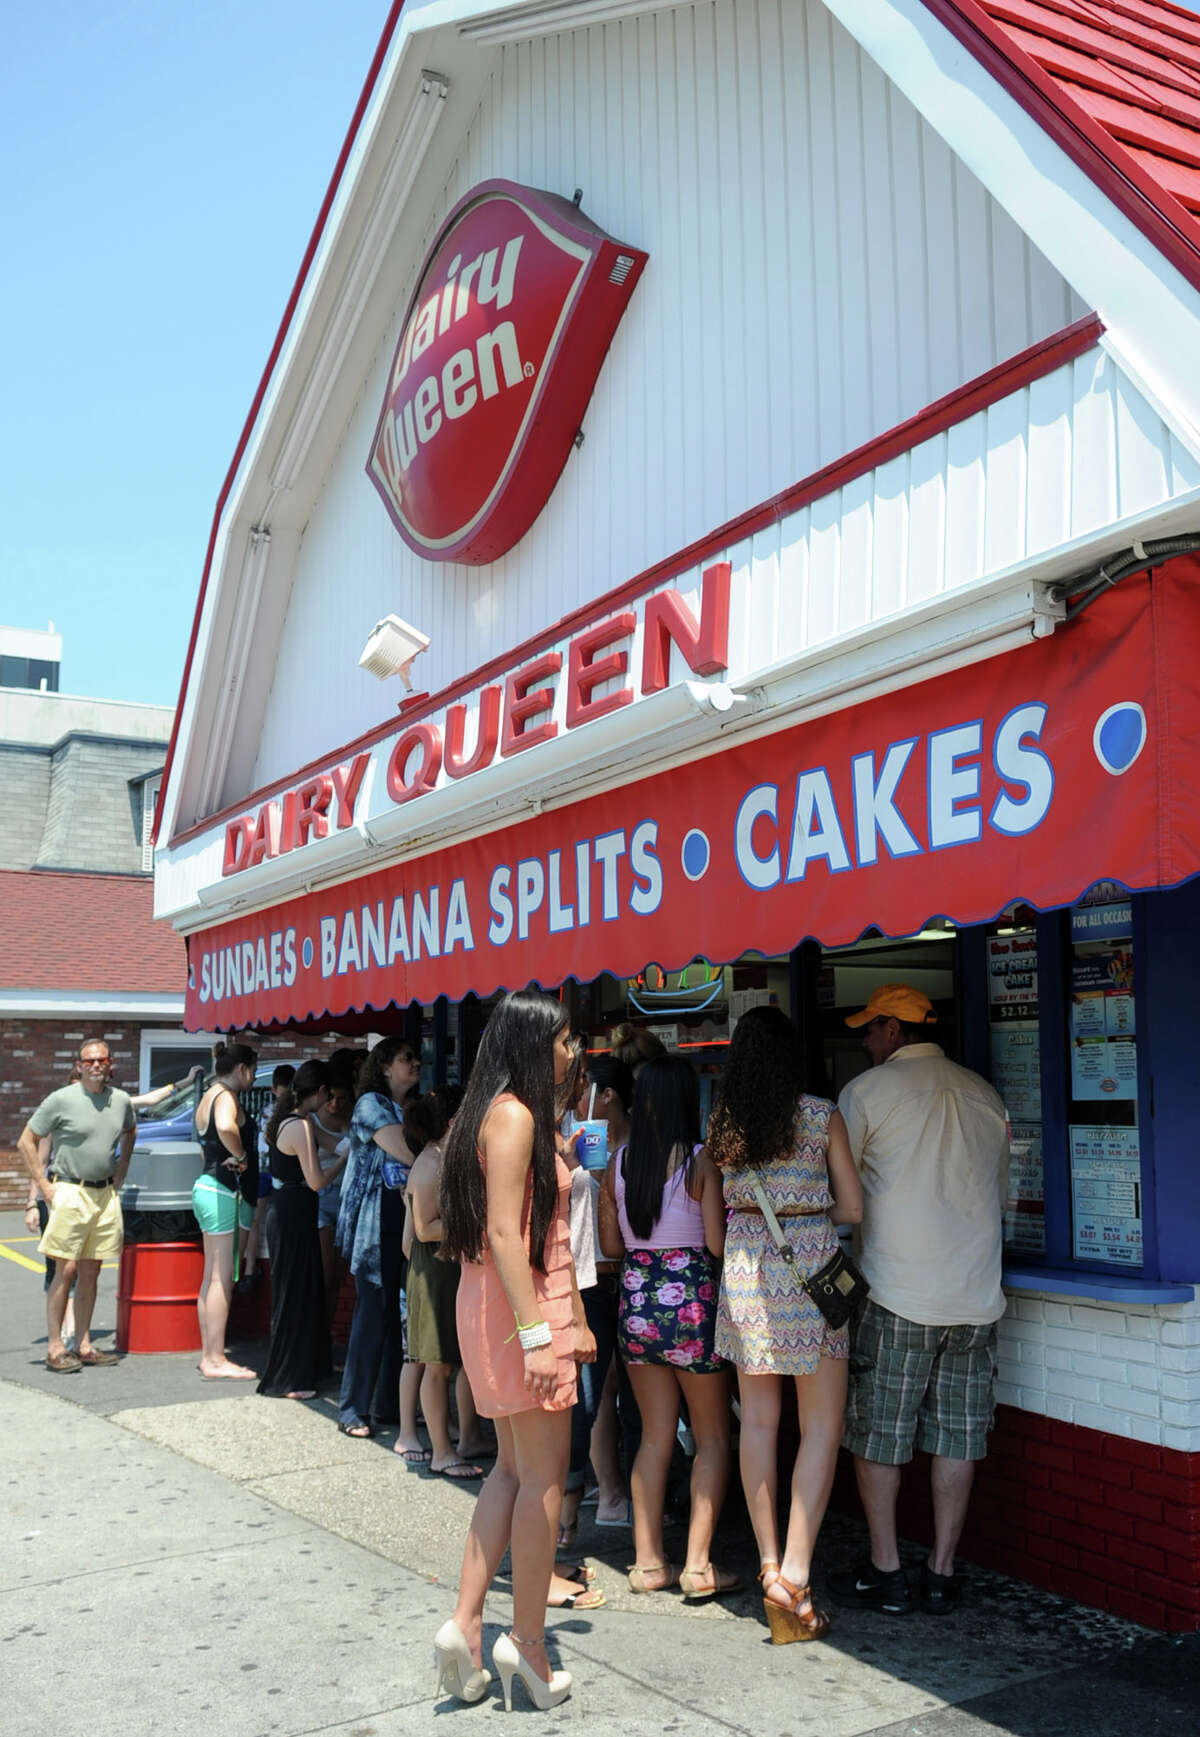 People line up to beat the heat at Dairy Queen in Stamford on Thursday, June 21, 2012.